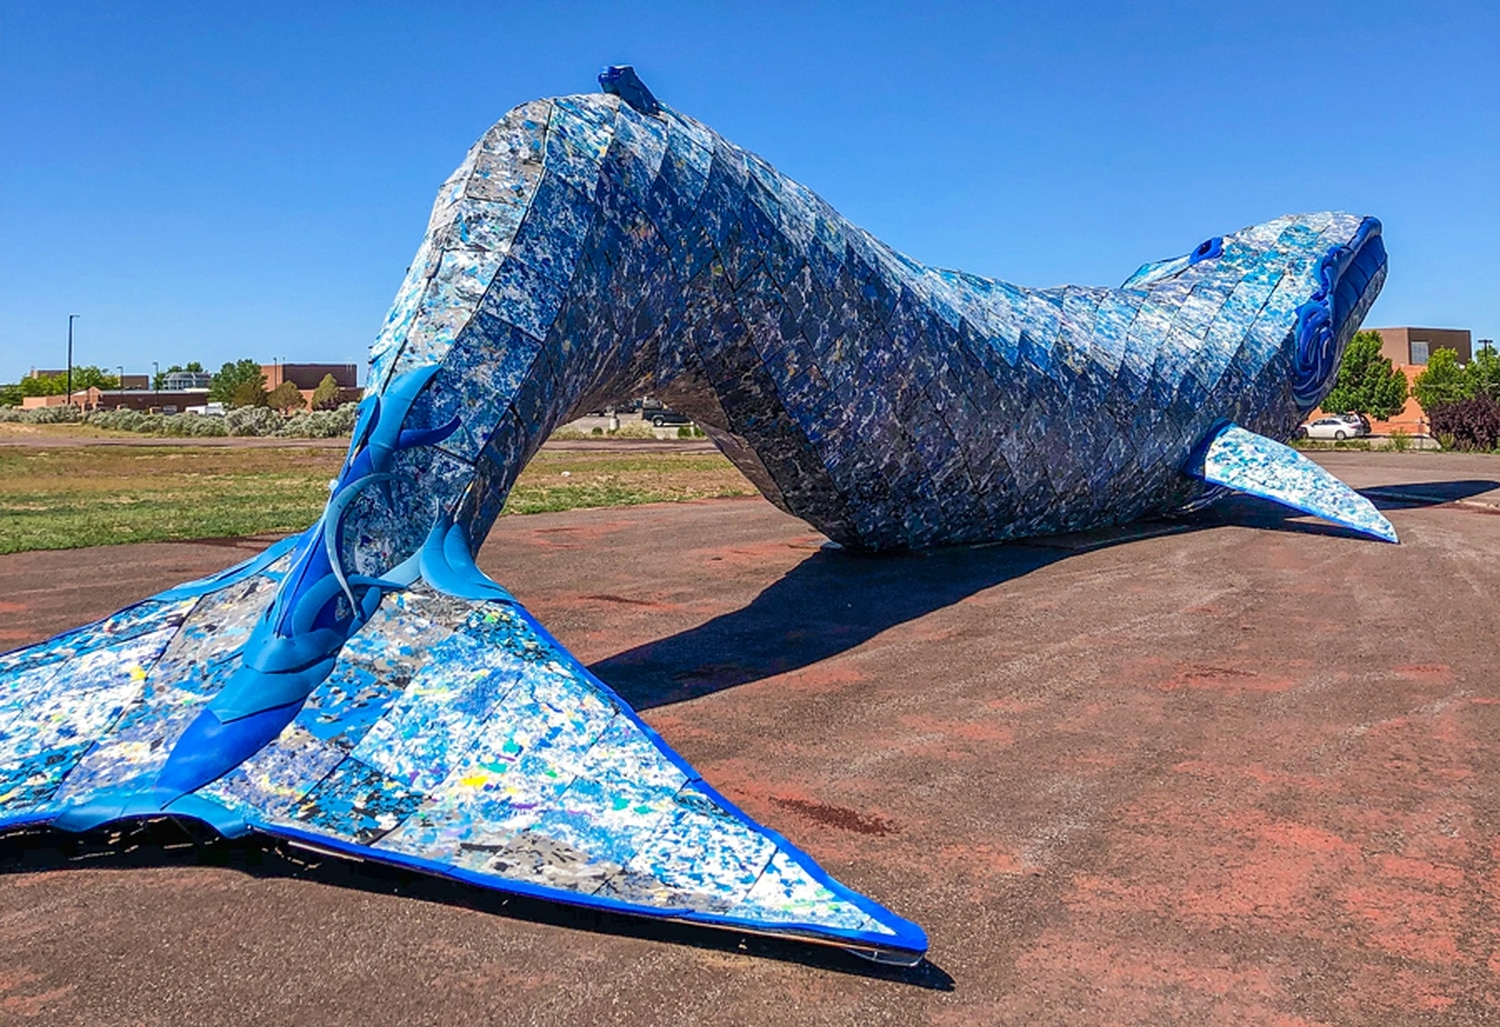 Students studying renewable energy at SFCC will light up the recycled materials blue whale shared with the campus by Meow Wolf.